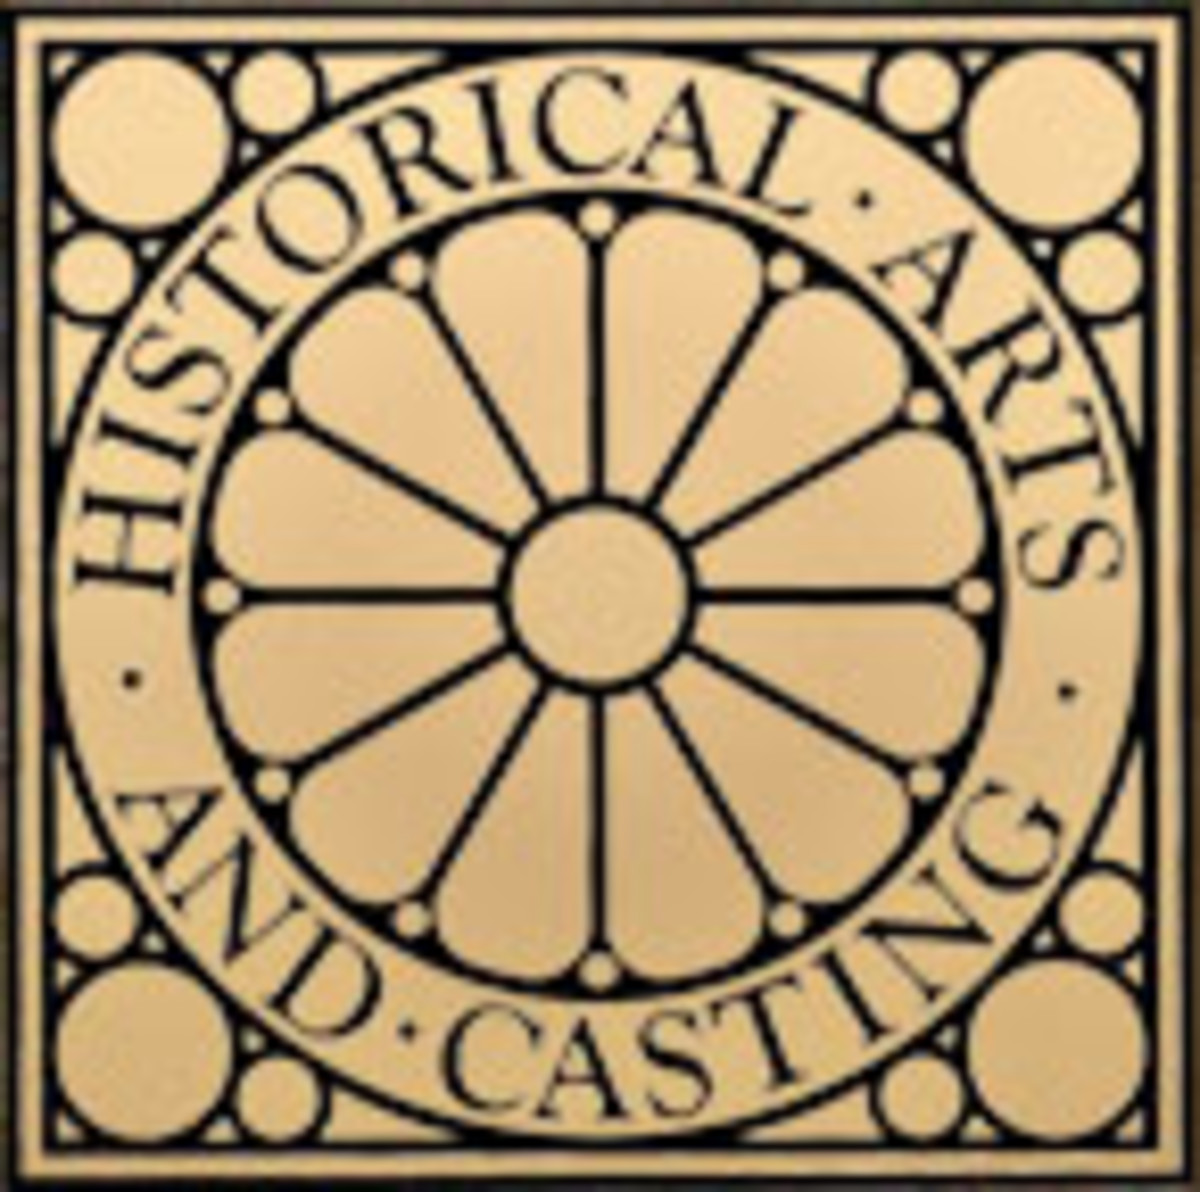 historical arts and casting logo